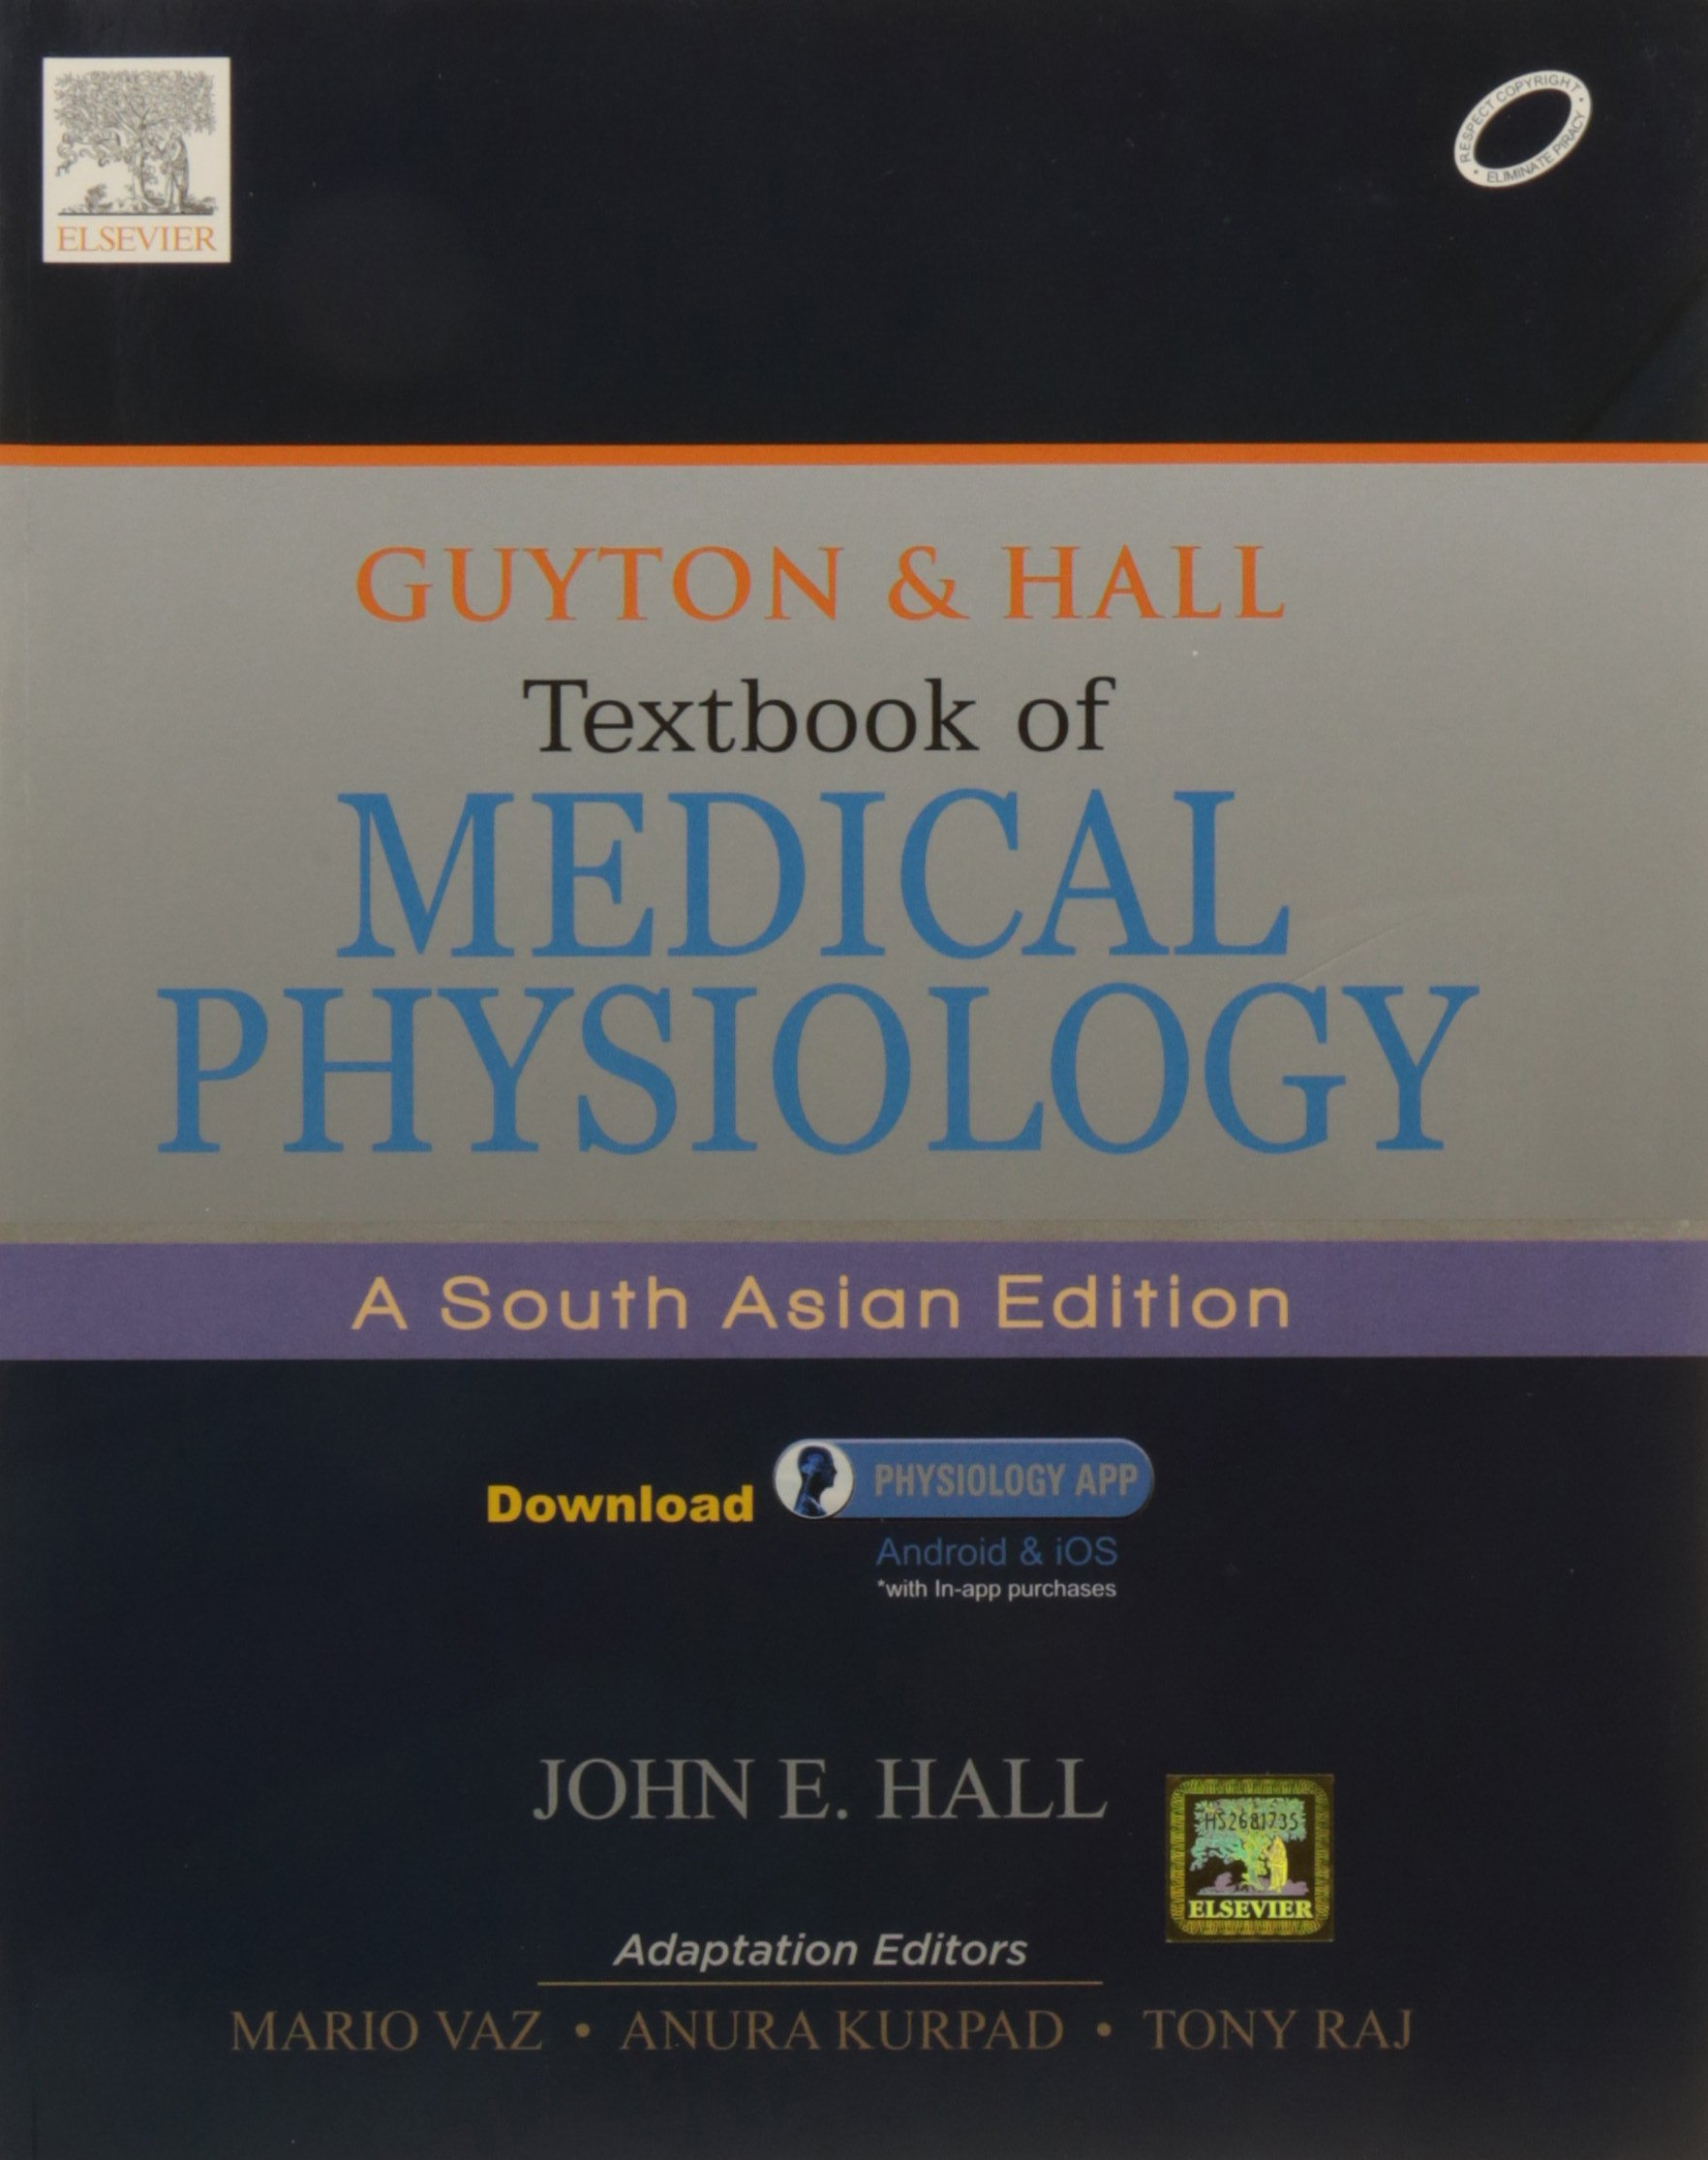 guyton hall textbook of medical physiology a south asian edition